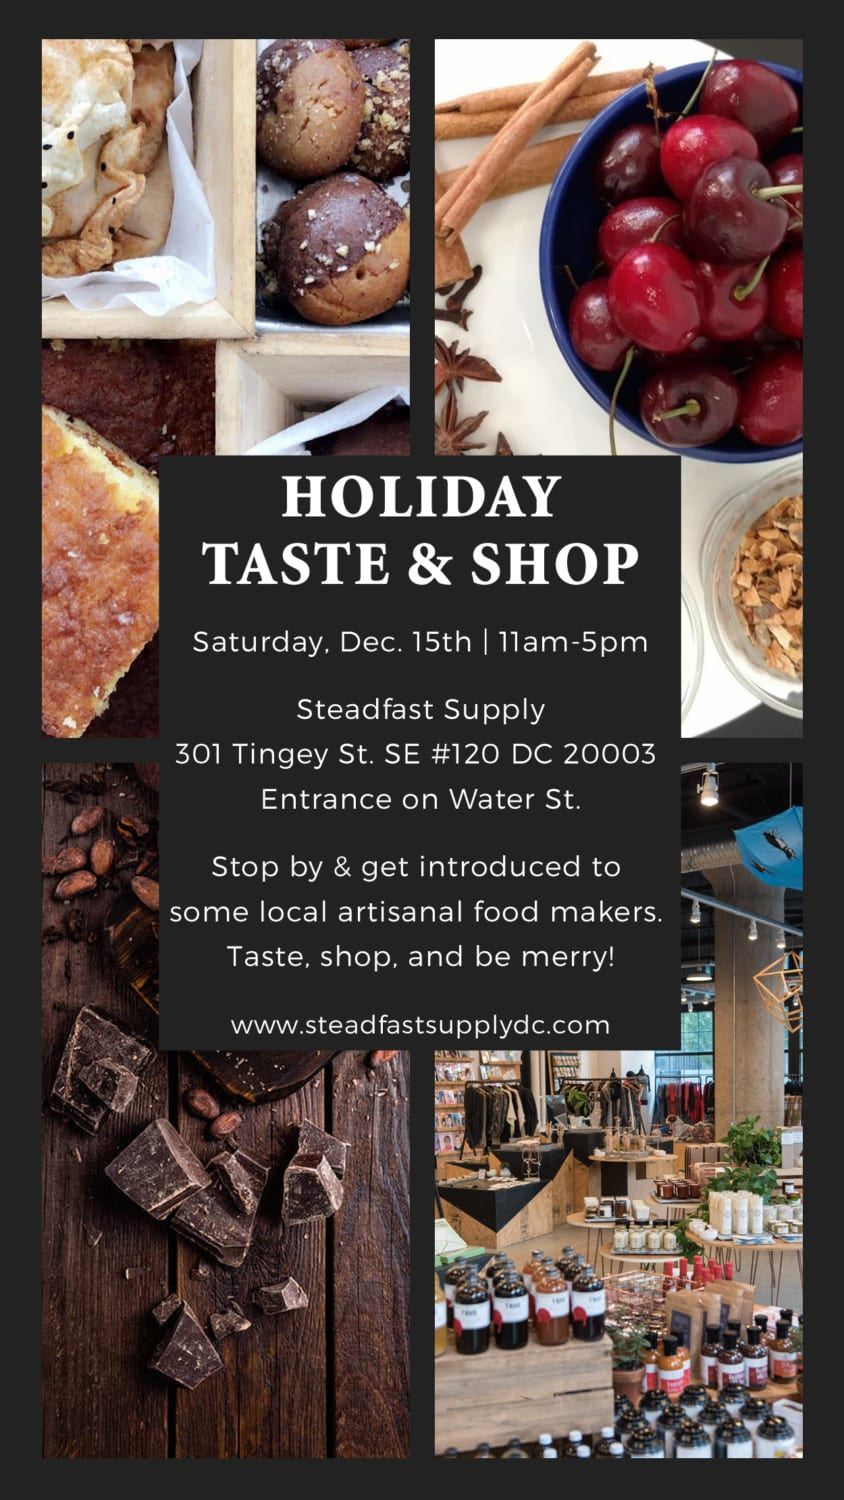 Flyer for Holiday taste and shop at Steadfast Supply